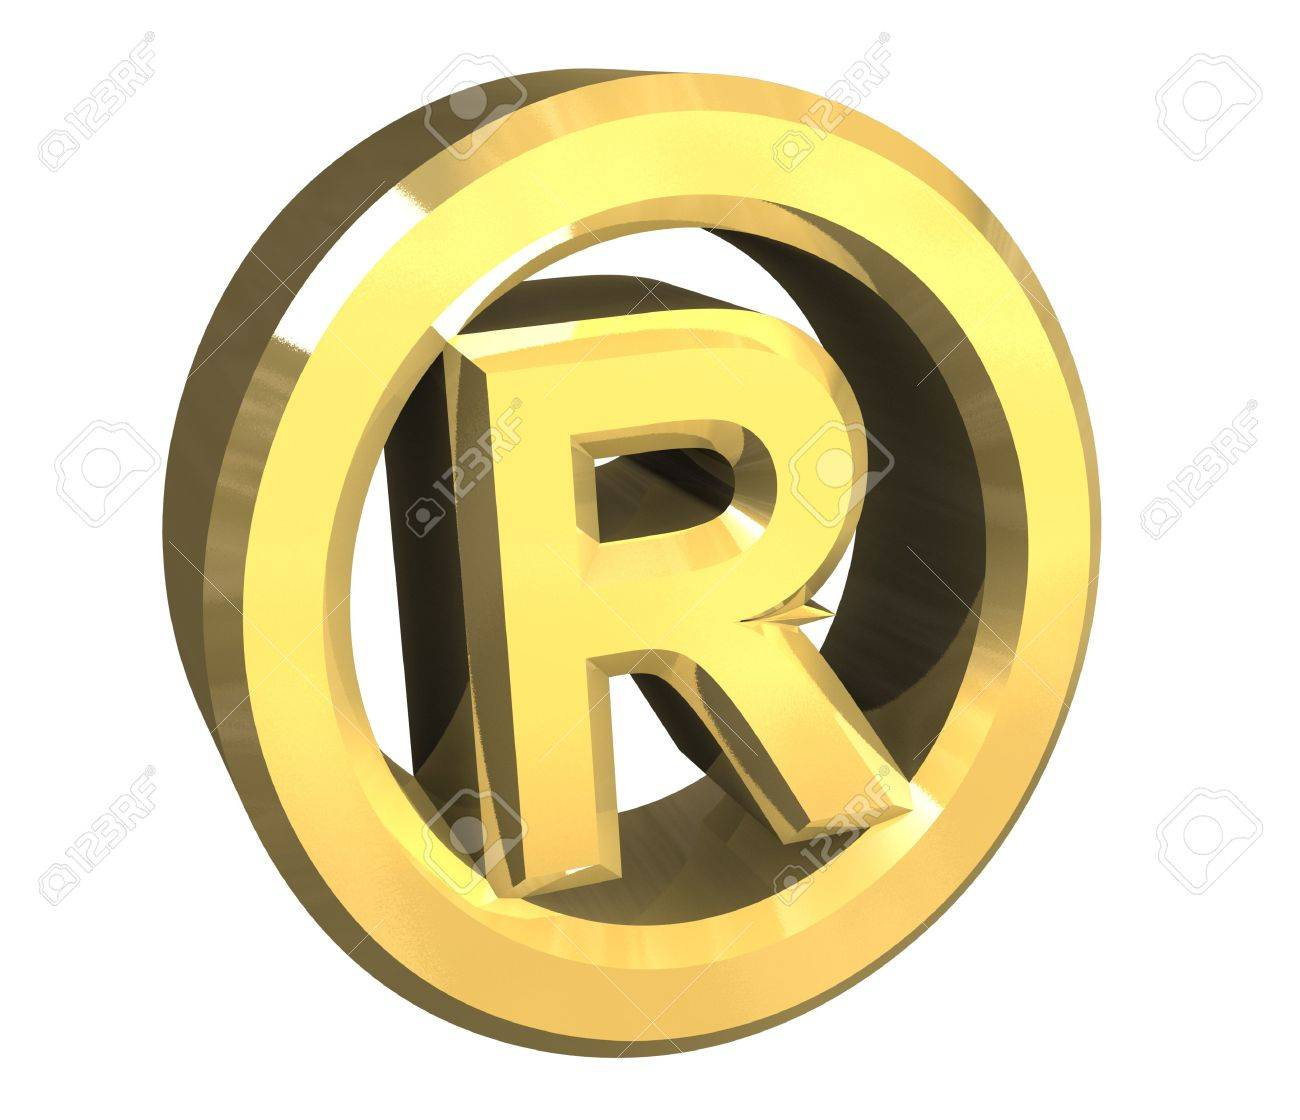 Registered symbol in gold 3d stock photo picture and royalty free registered symbol in gold 3d stock photo 5569708 buycottarizona Gallery